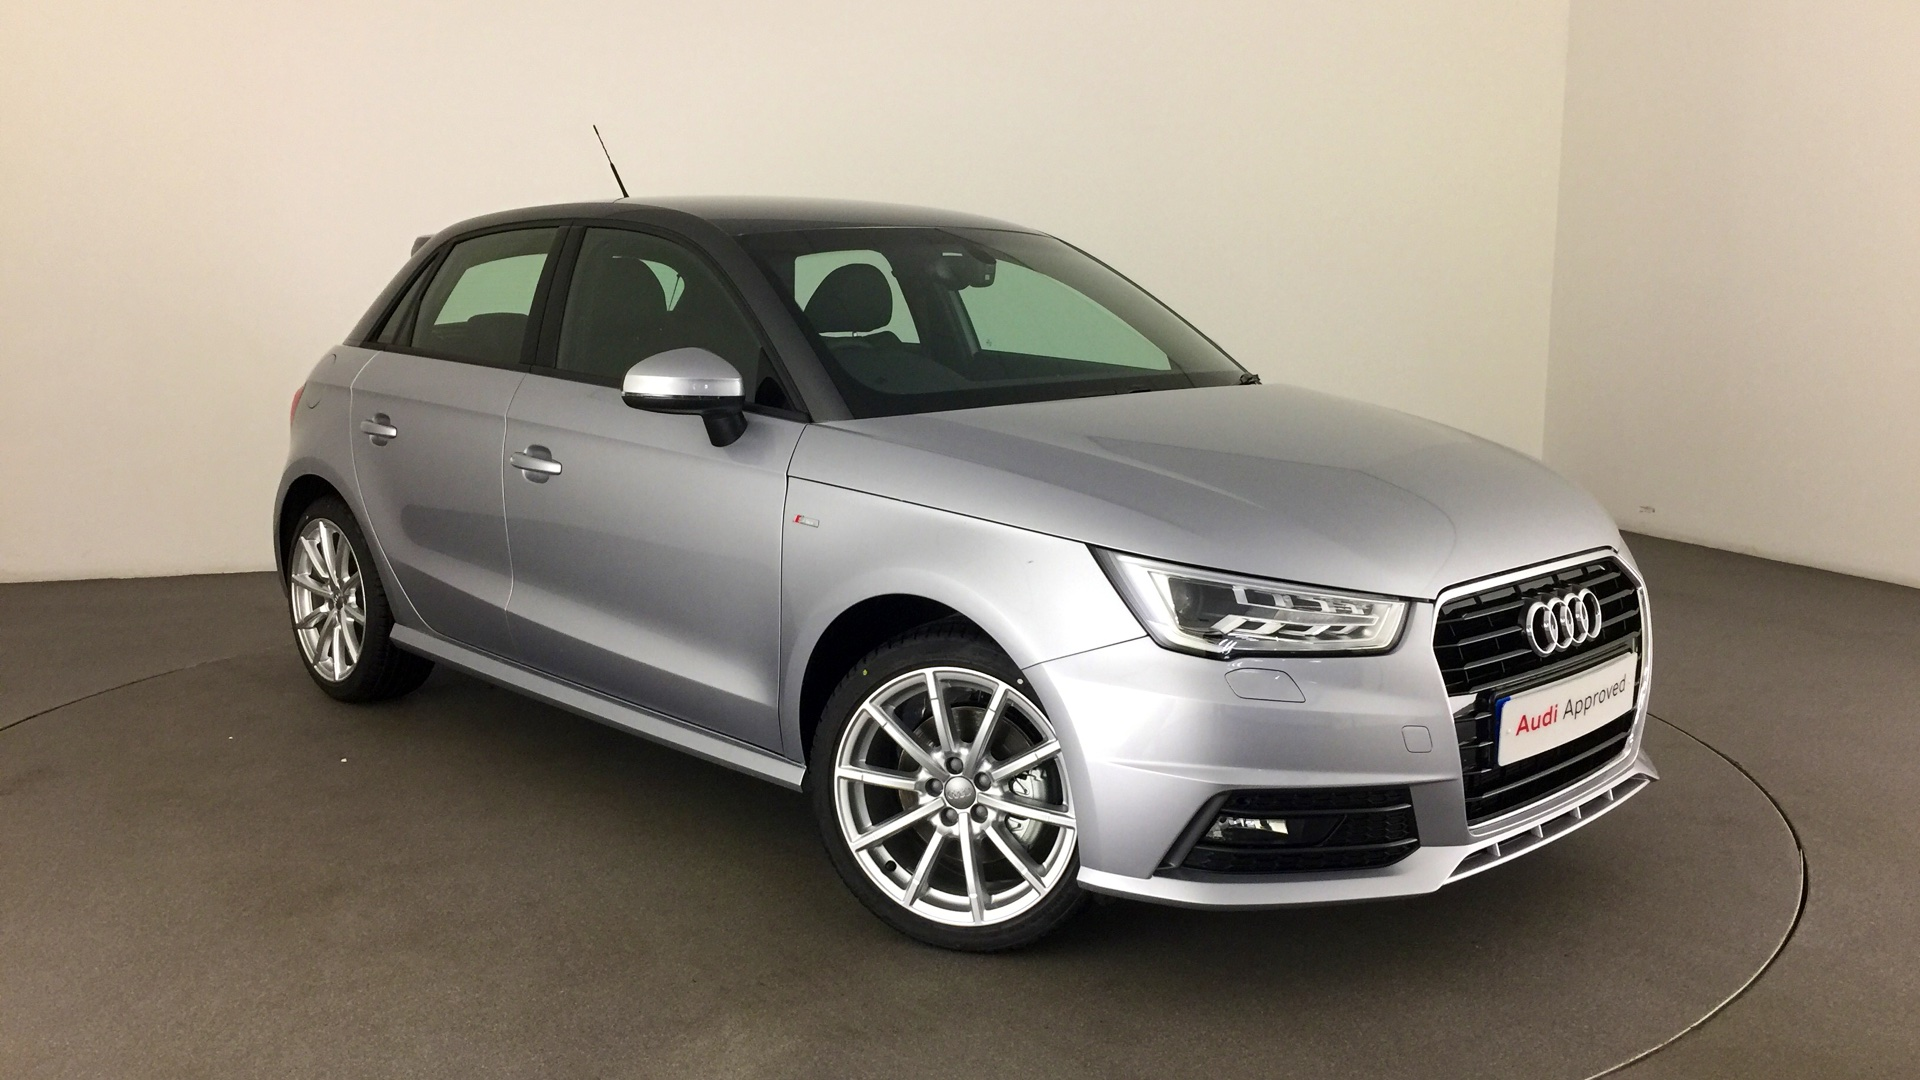 approved used audi a1 sportback s line 1 6 tdi 116 ps 5. Black Bedroom Furniture Sets. Home Design Ideas